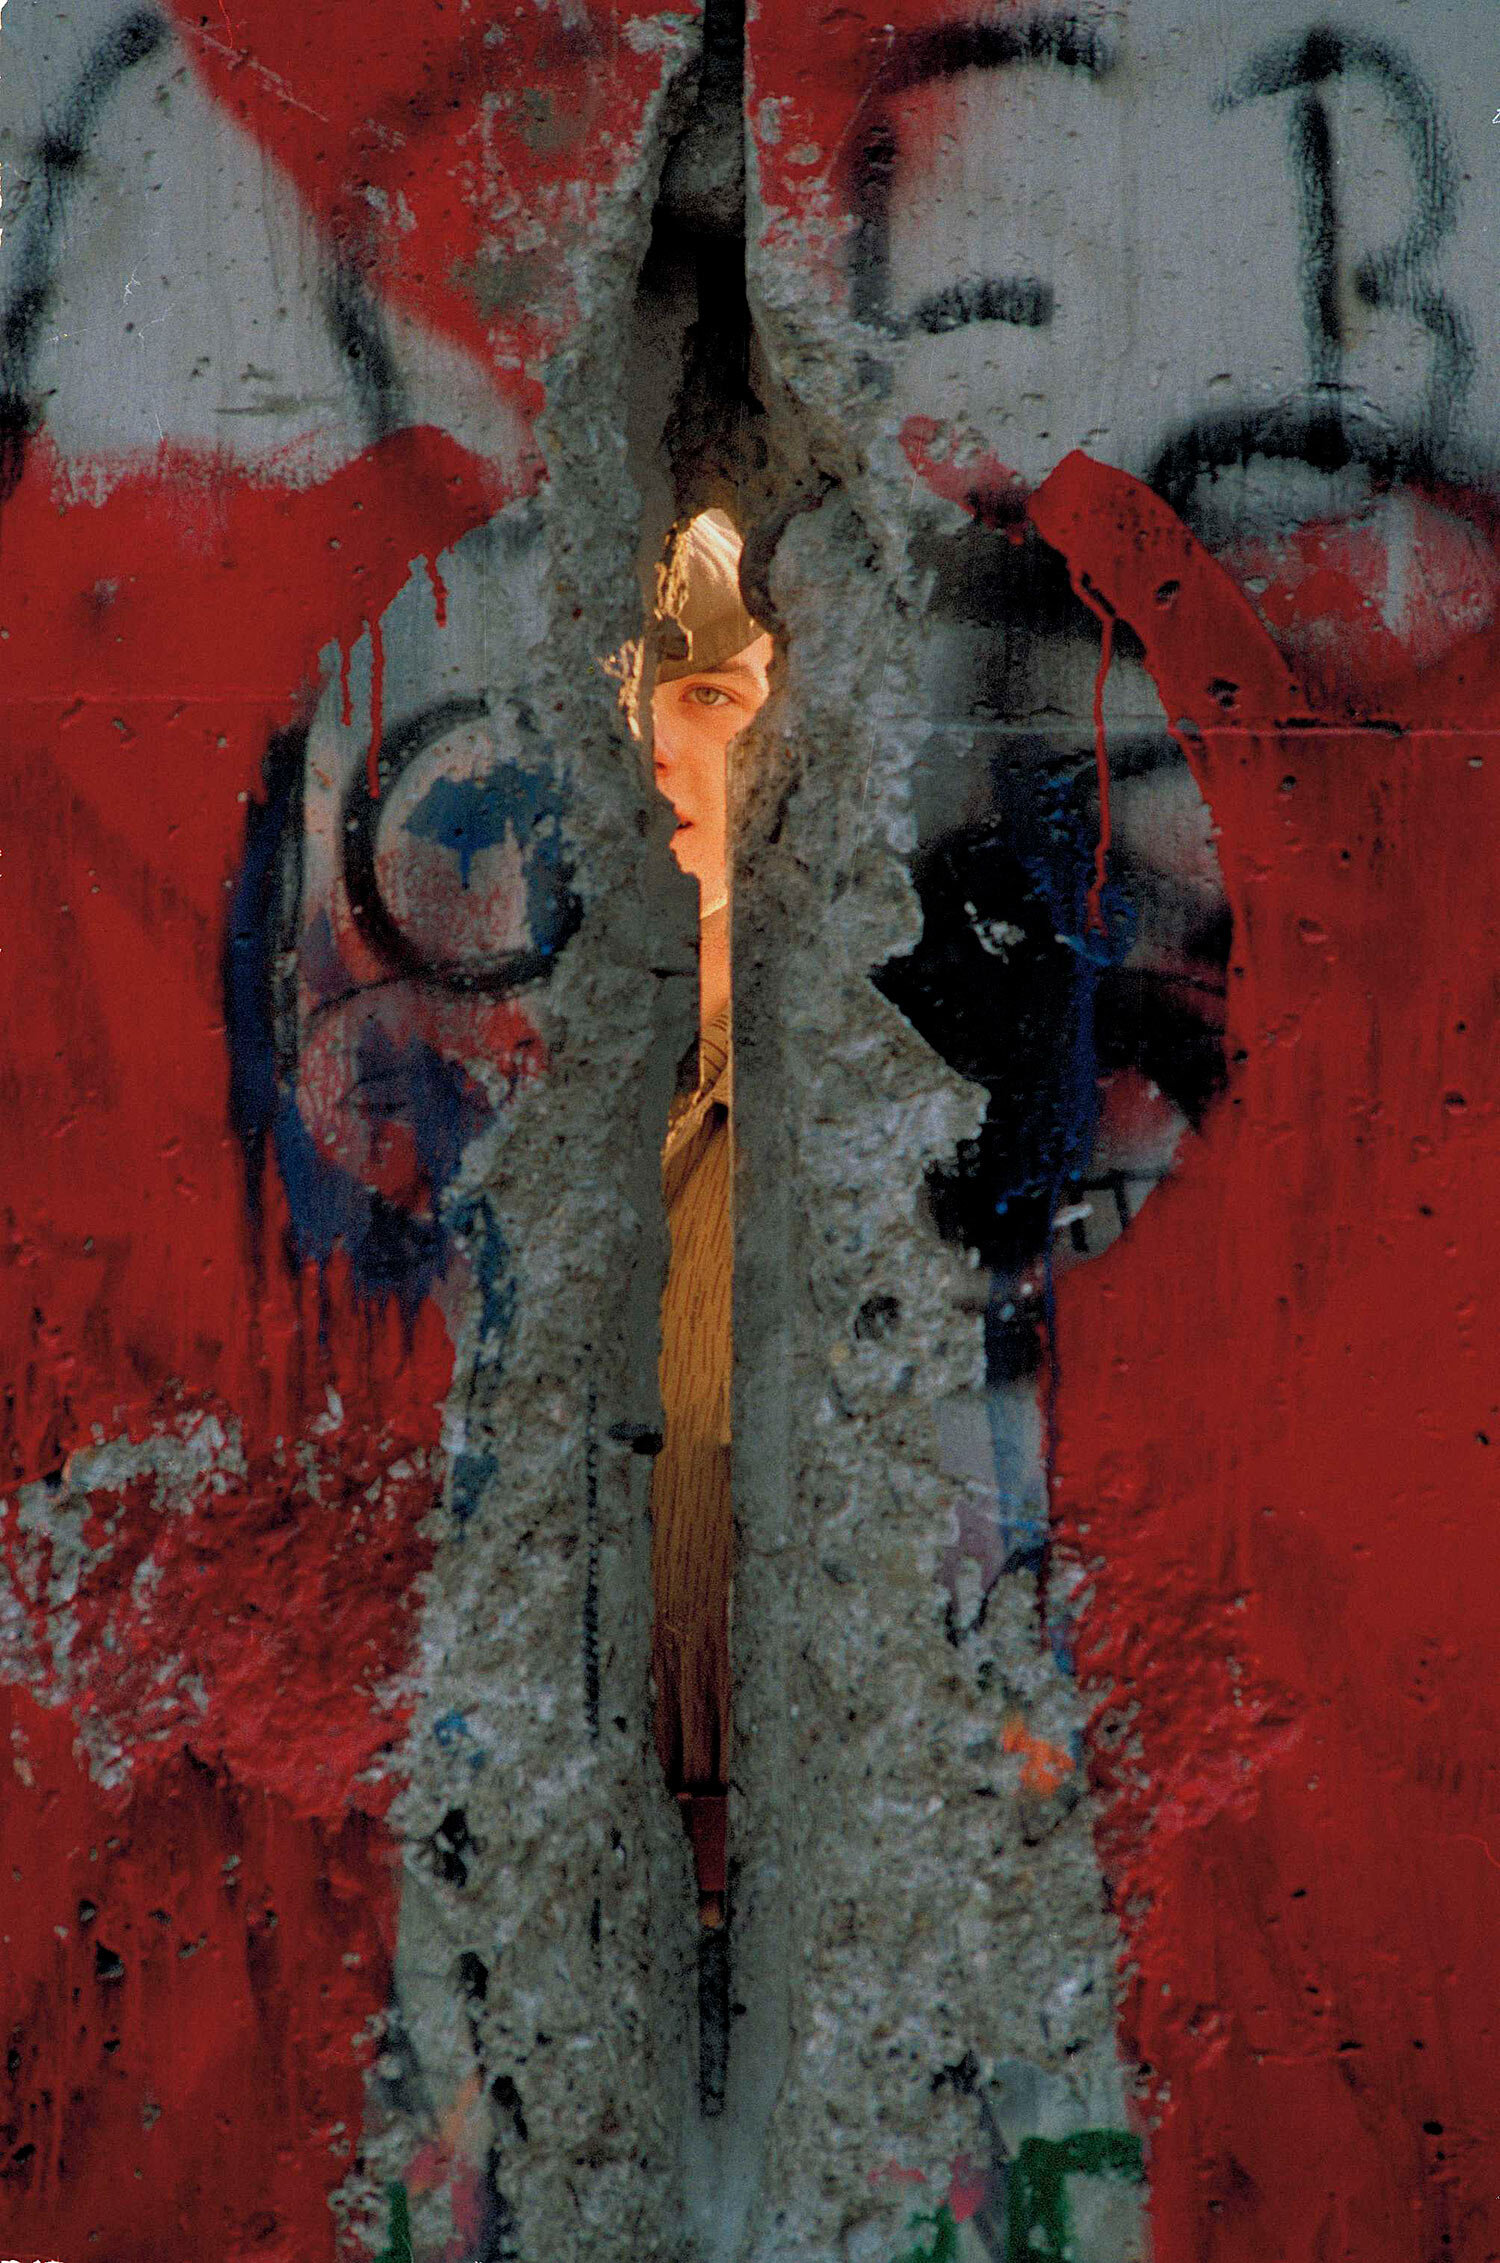 An East German border guard peers through a crack in the Berlin Wall, Nov. 17, 1989, shortly after a West Berliner painted a keyhole around the opening. (AP Photo/John Gaps III)